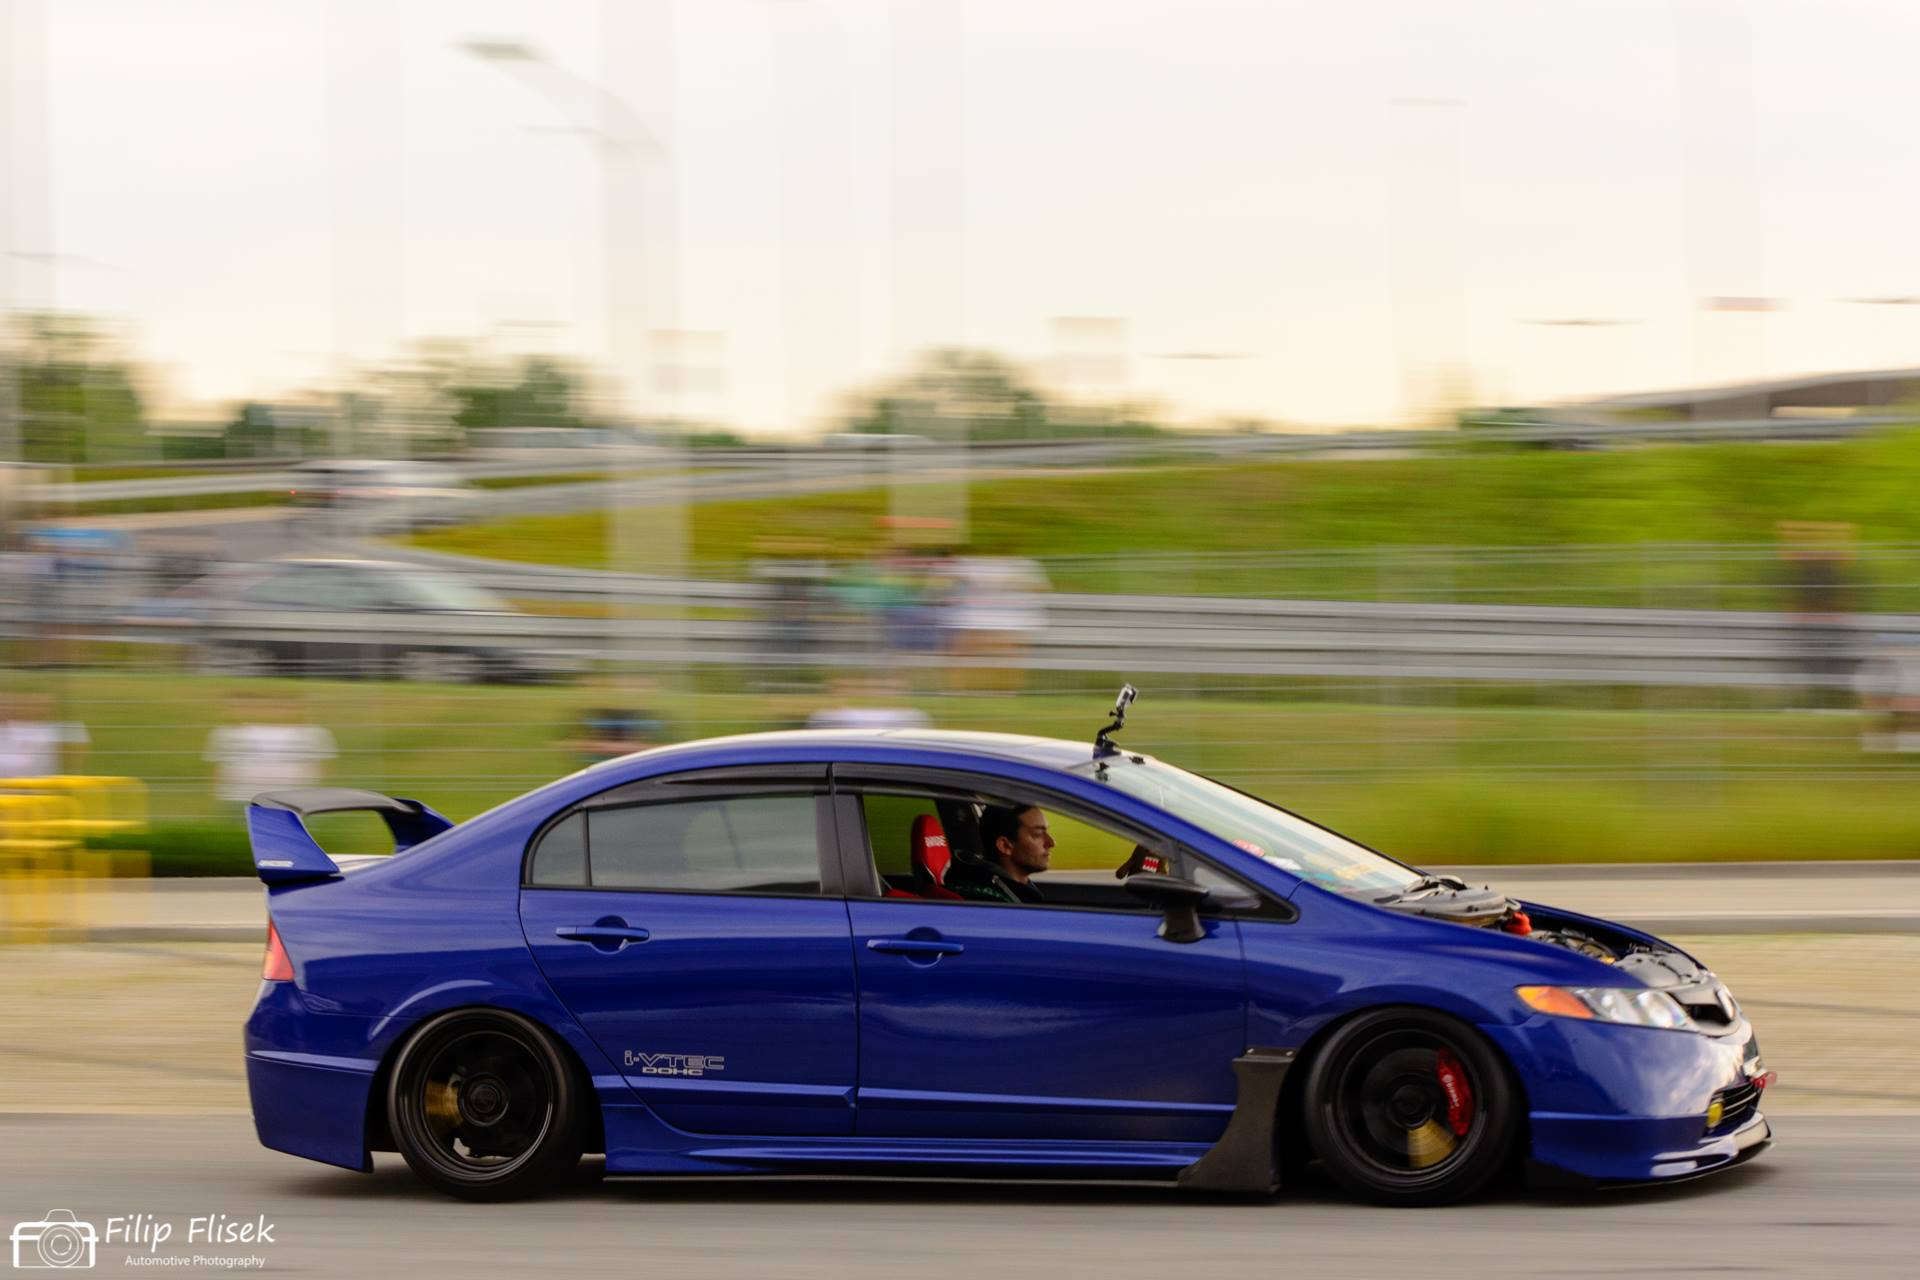 Import Car Wallpapers Diggin This Civic A Lot Stancenation Form Gt Function